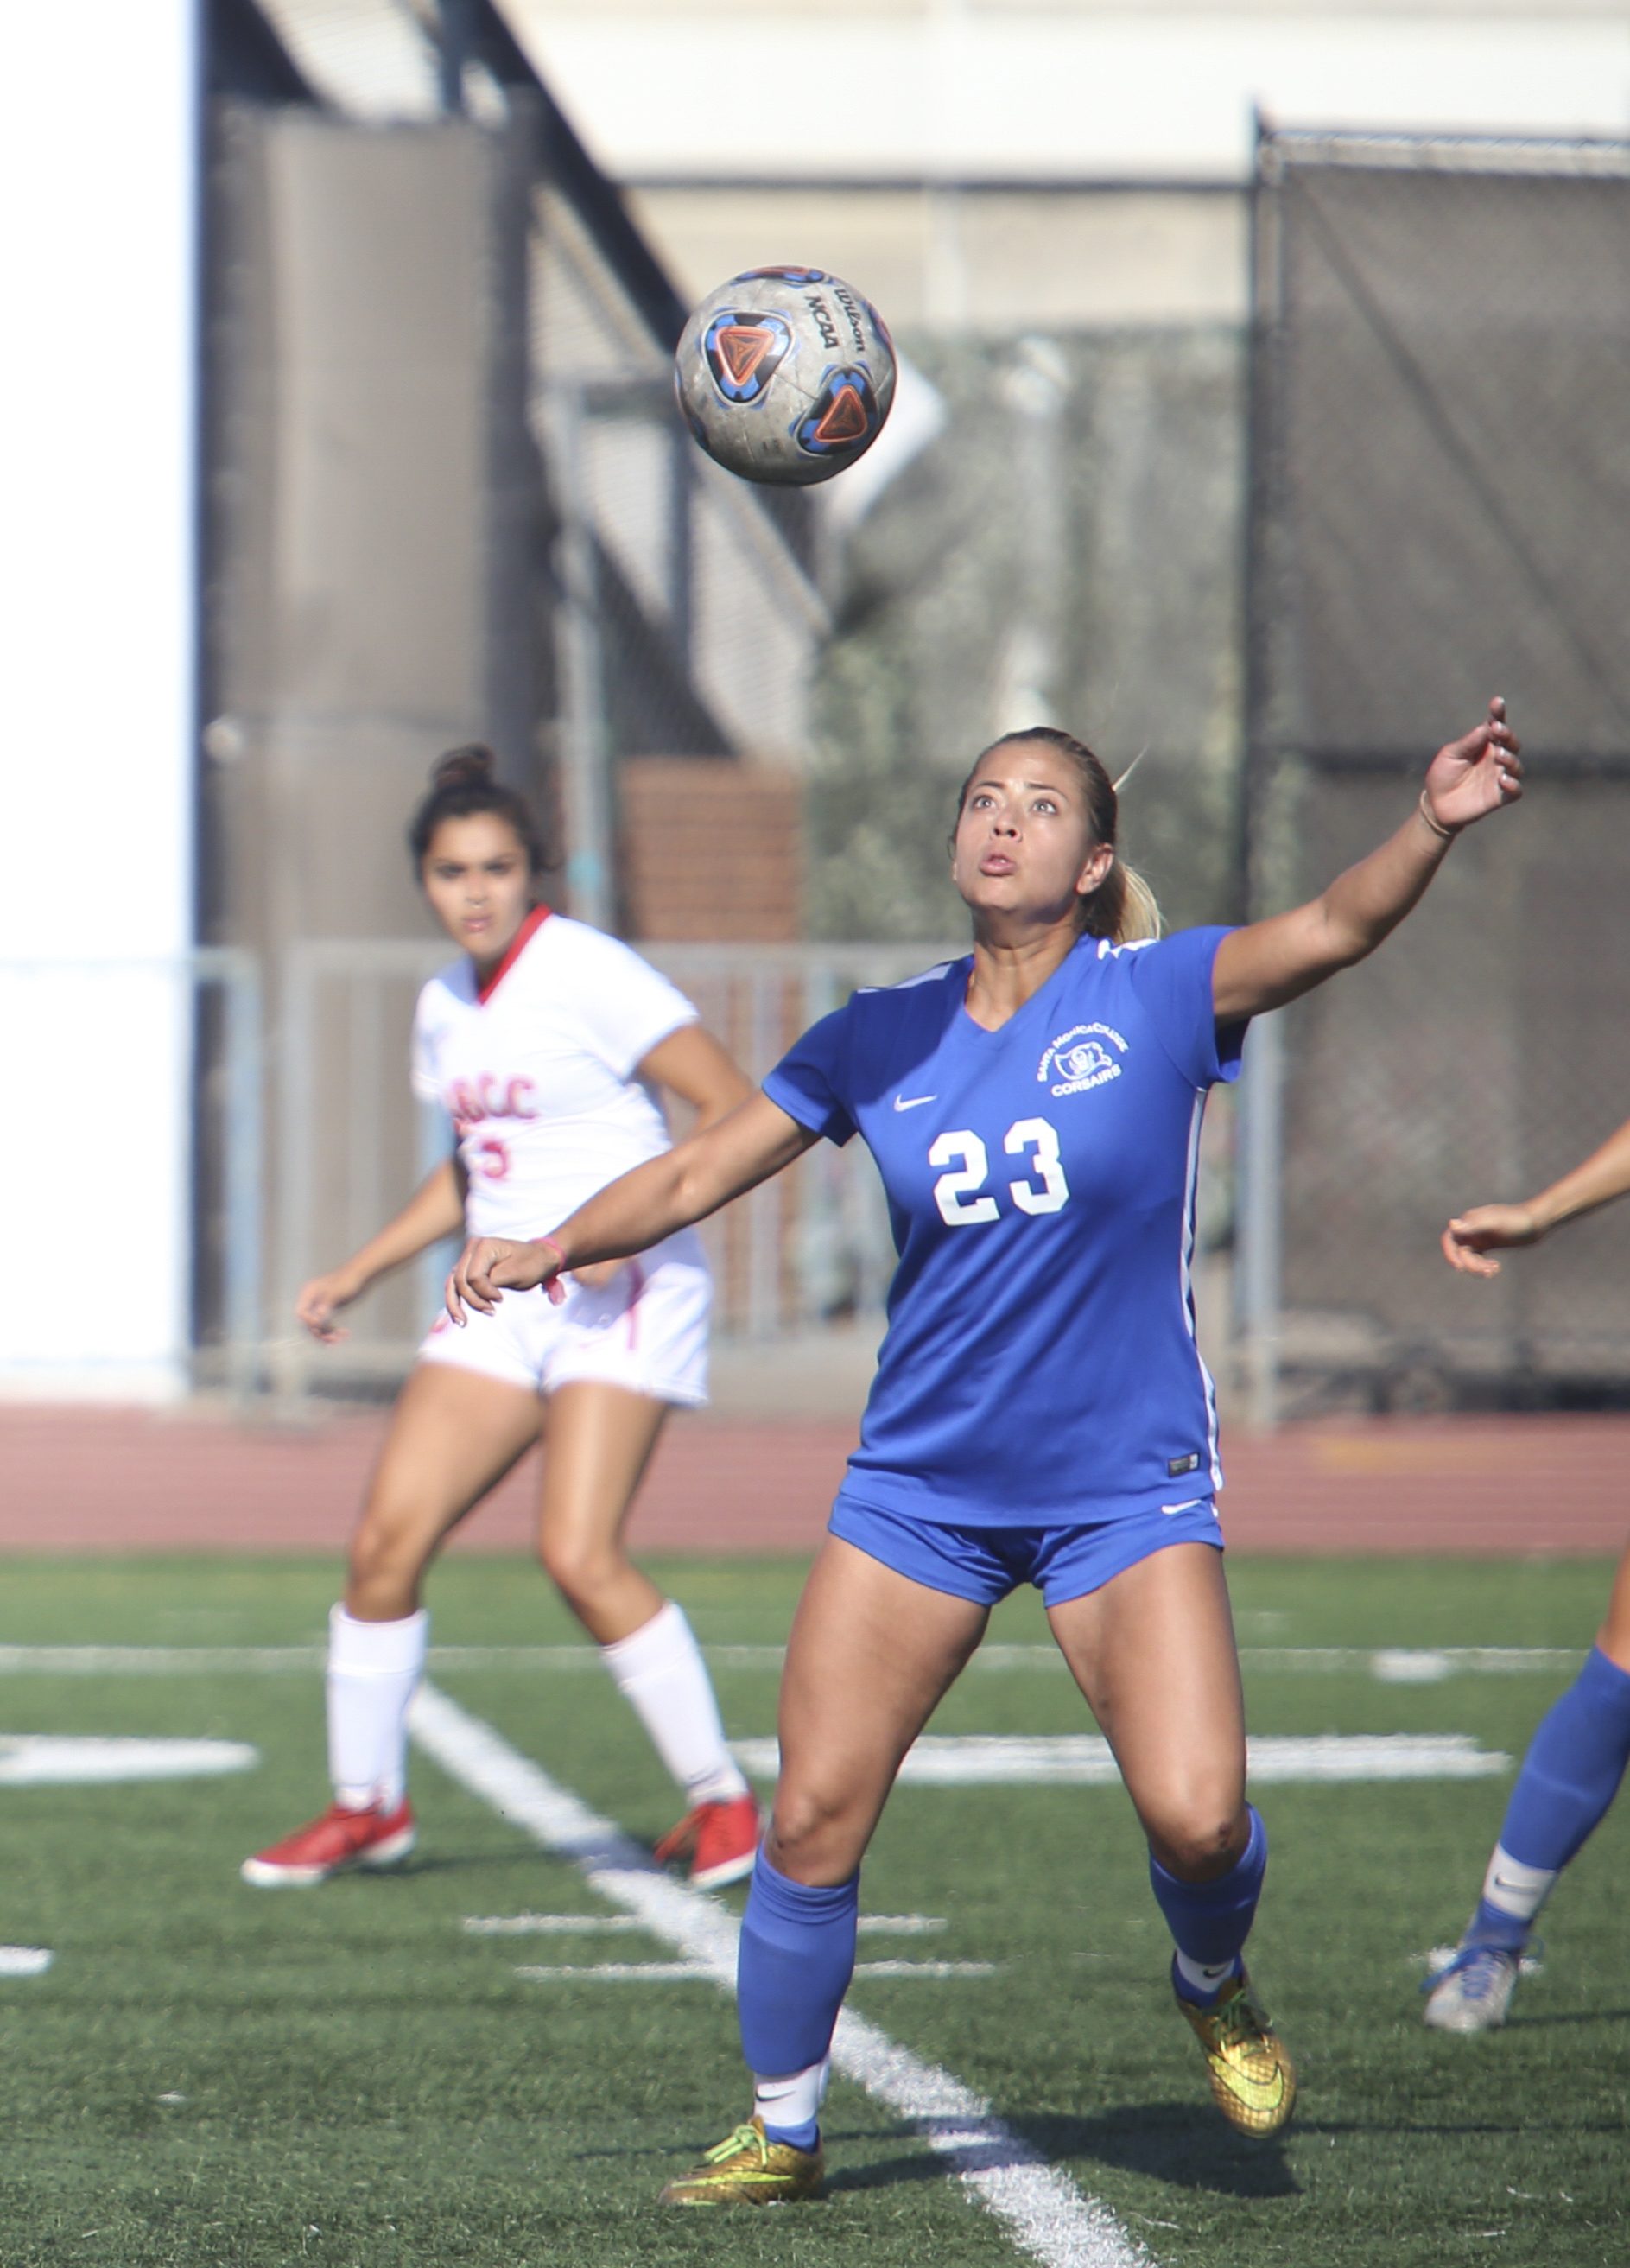 Daysi Serrano (23) prepares to headbutt the ball during the soccer game between the Santa Monica College Corsairs and Santa Barbara City College Vaqueros at the Corsair Stadium at Santa Monica College's Main Campus in Santa Monica, Calif on Tuesday, October 3rd 2017. The final score was 2-0 Vaqueros. (Photo by: Thane Fernandes)